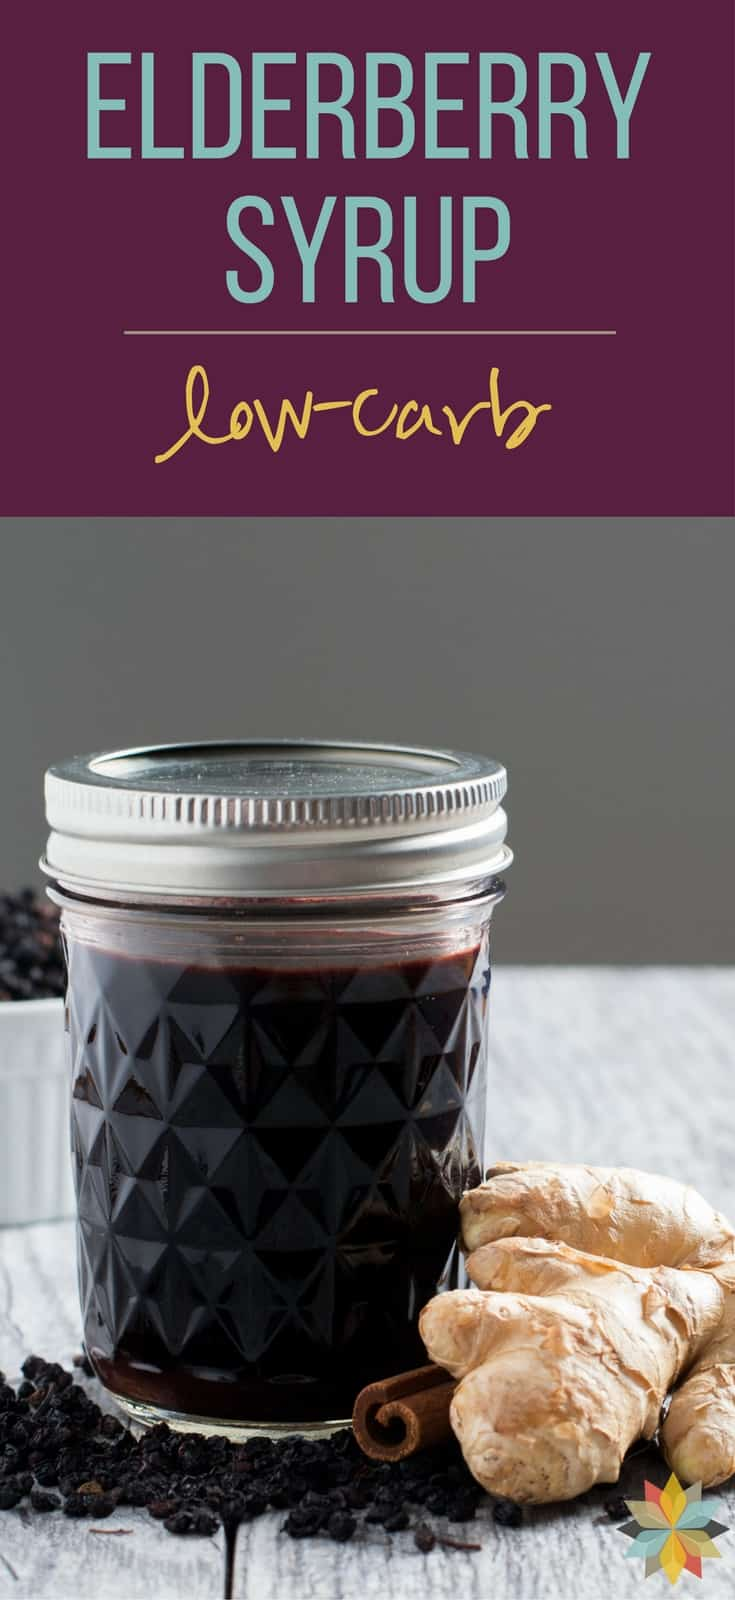 Easy Homemade Elderberry Syrup - low carb option. Just what you need to boost your immune system to stay healthy and keep germs away!